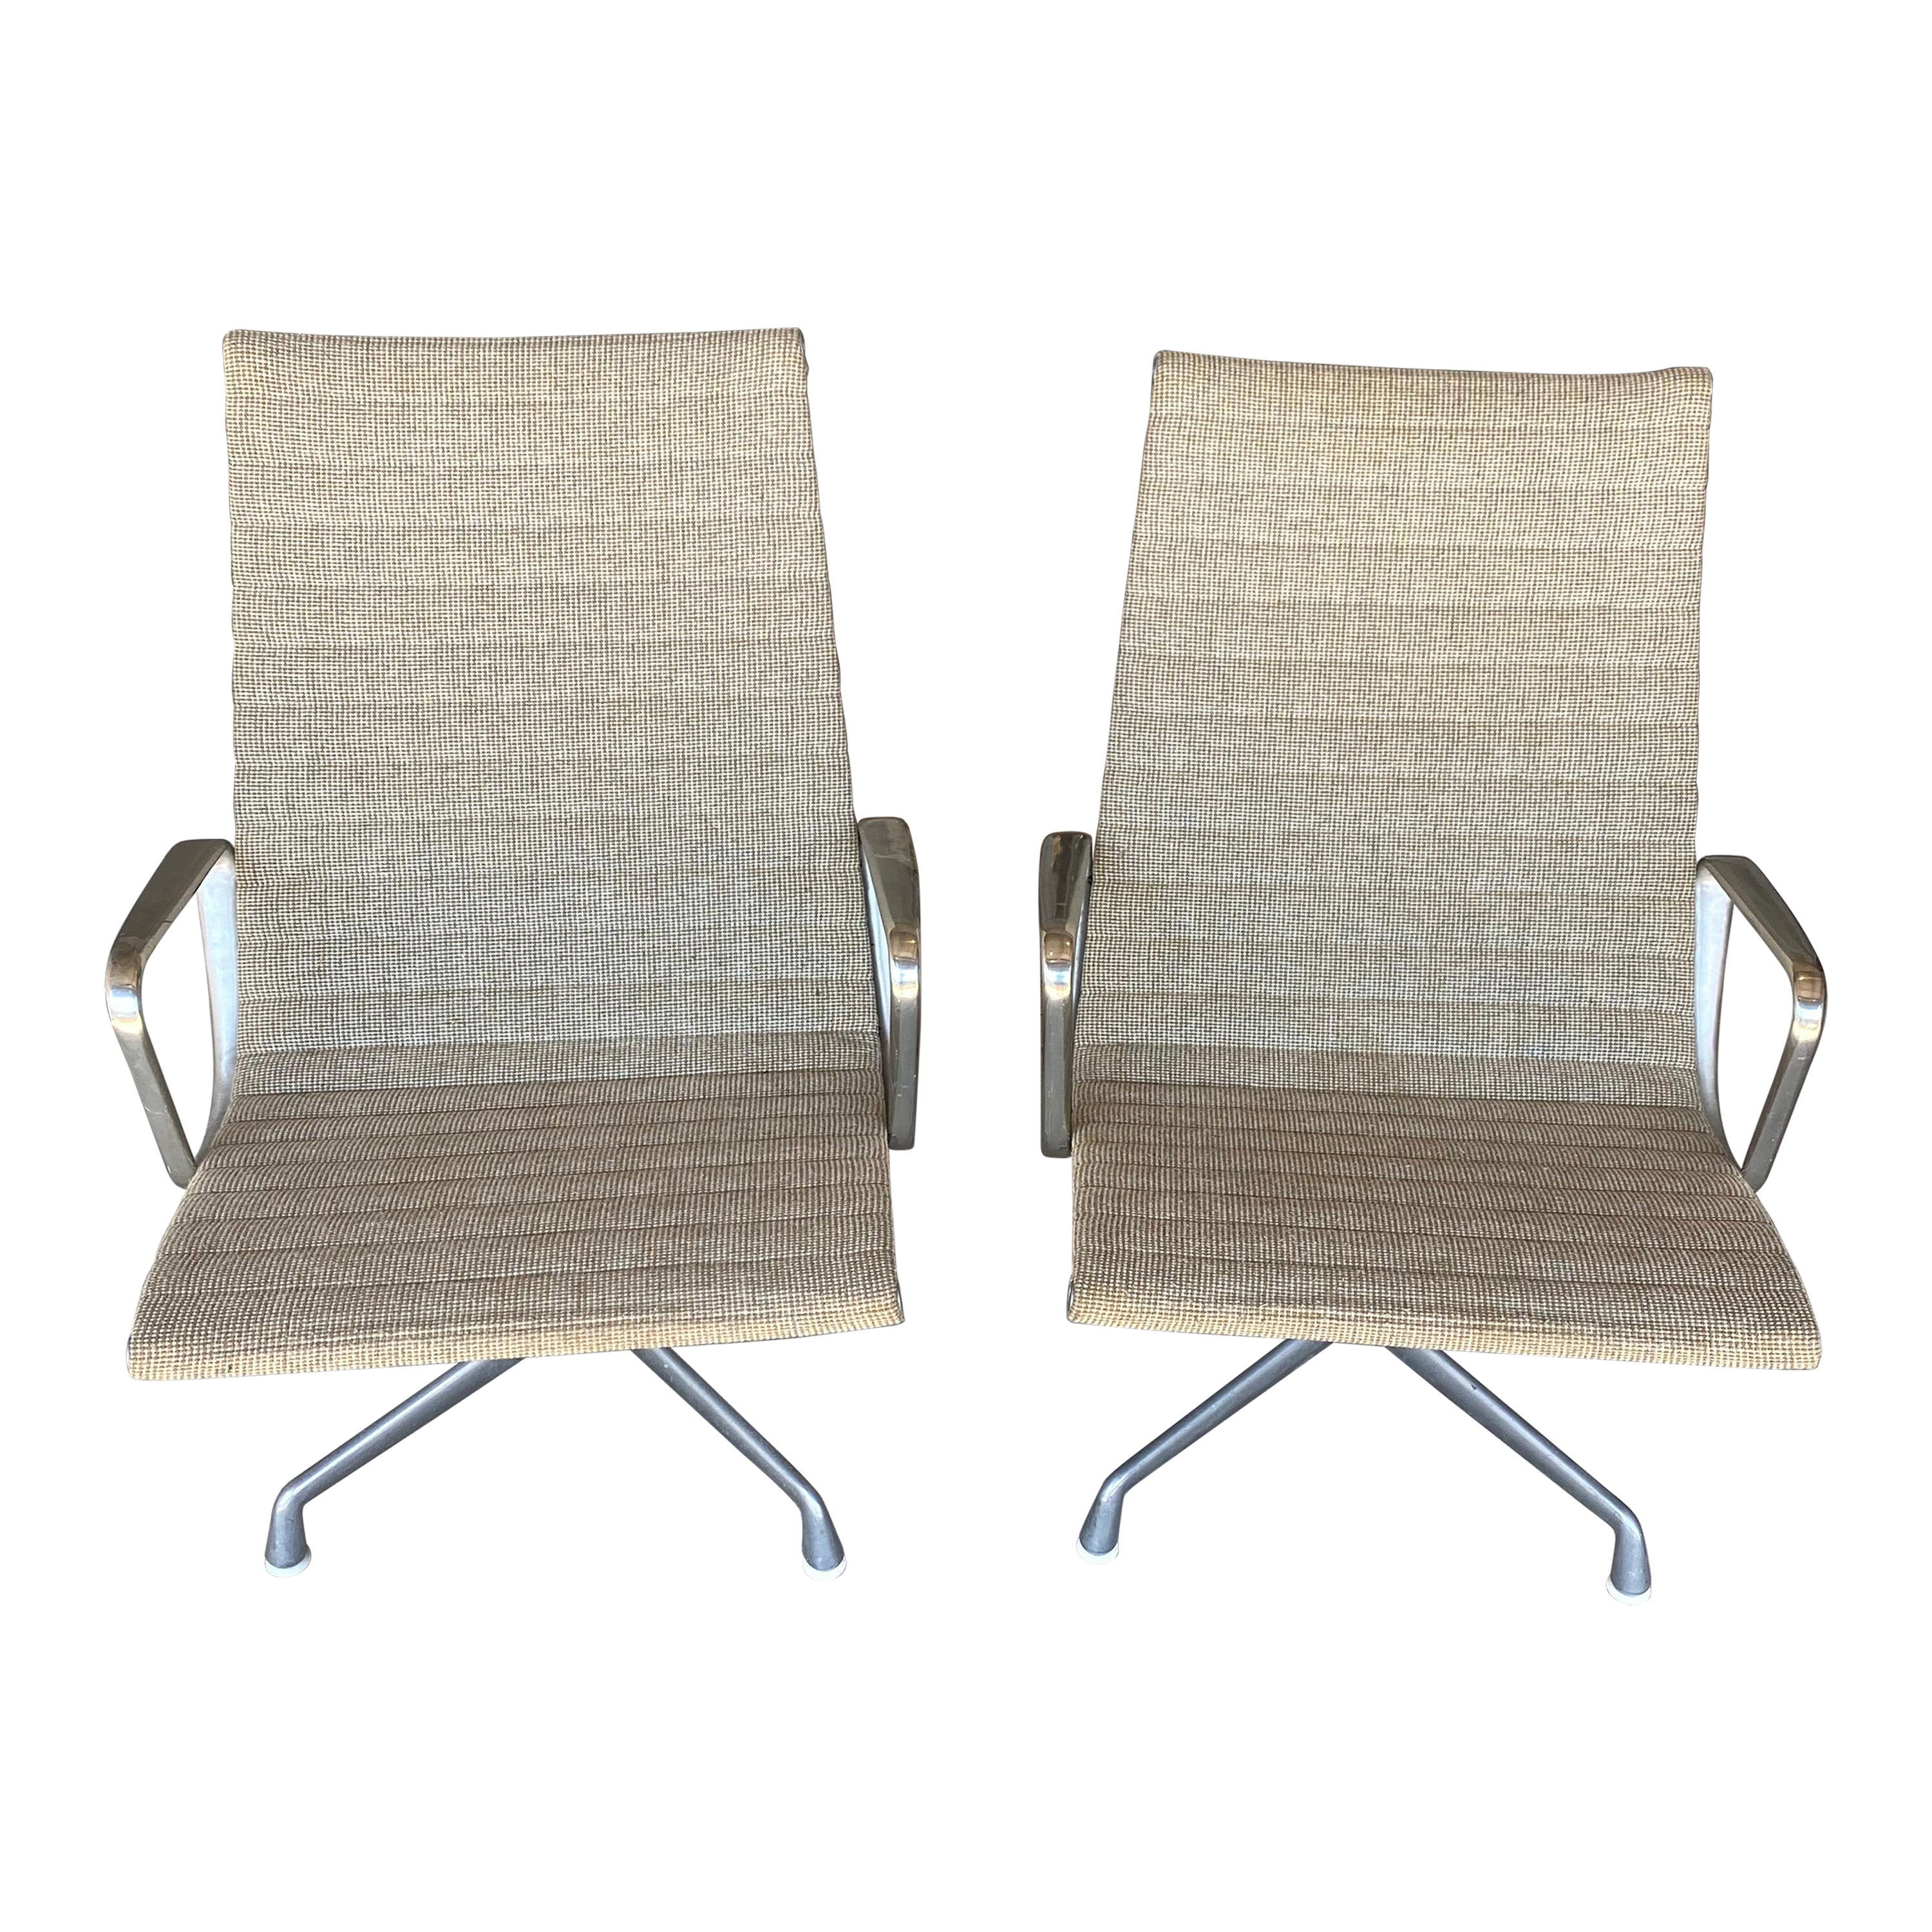 Pair or Eames Aluminum Group Lounge Chairs with Alexander Girard Textile